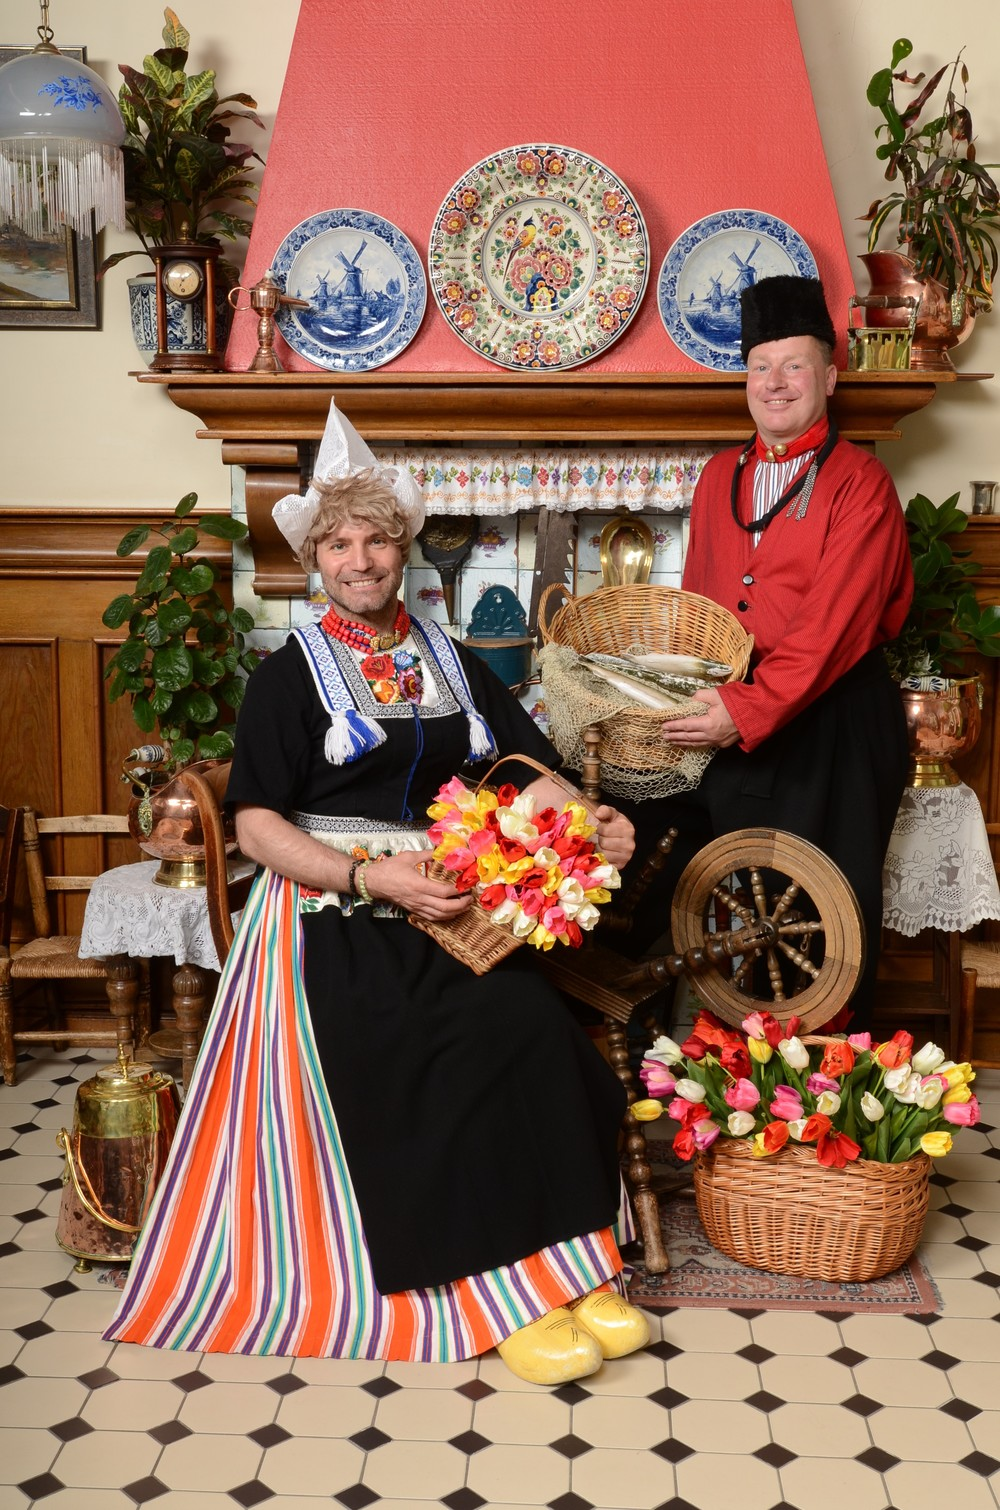 Friends in Volendam costume